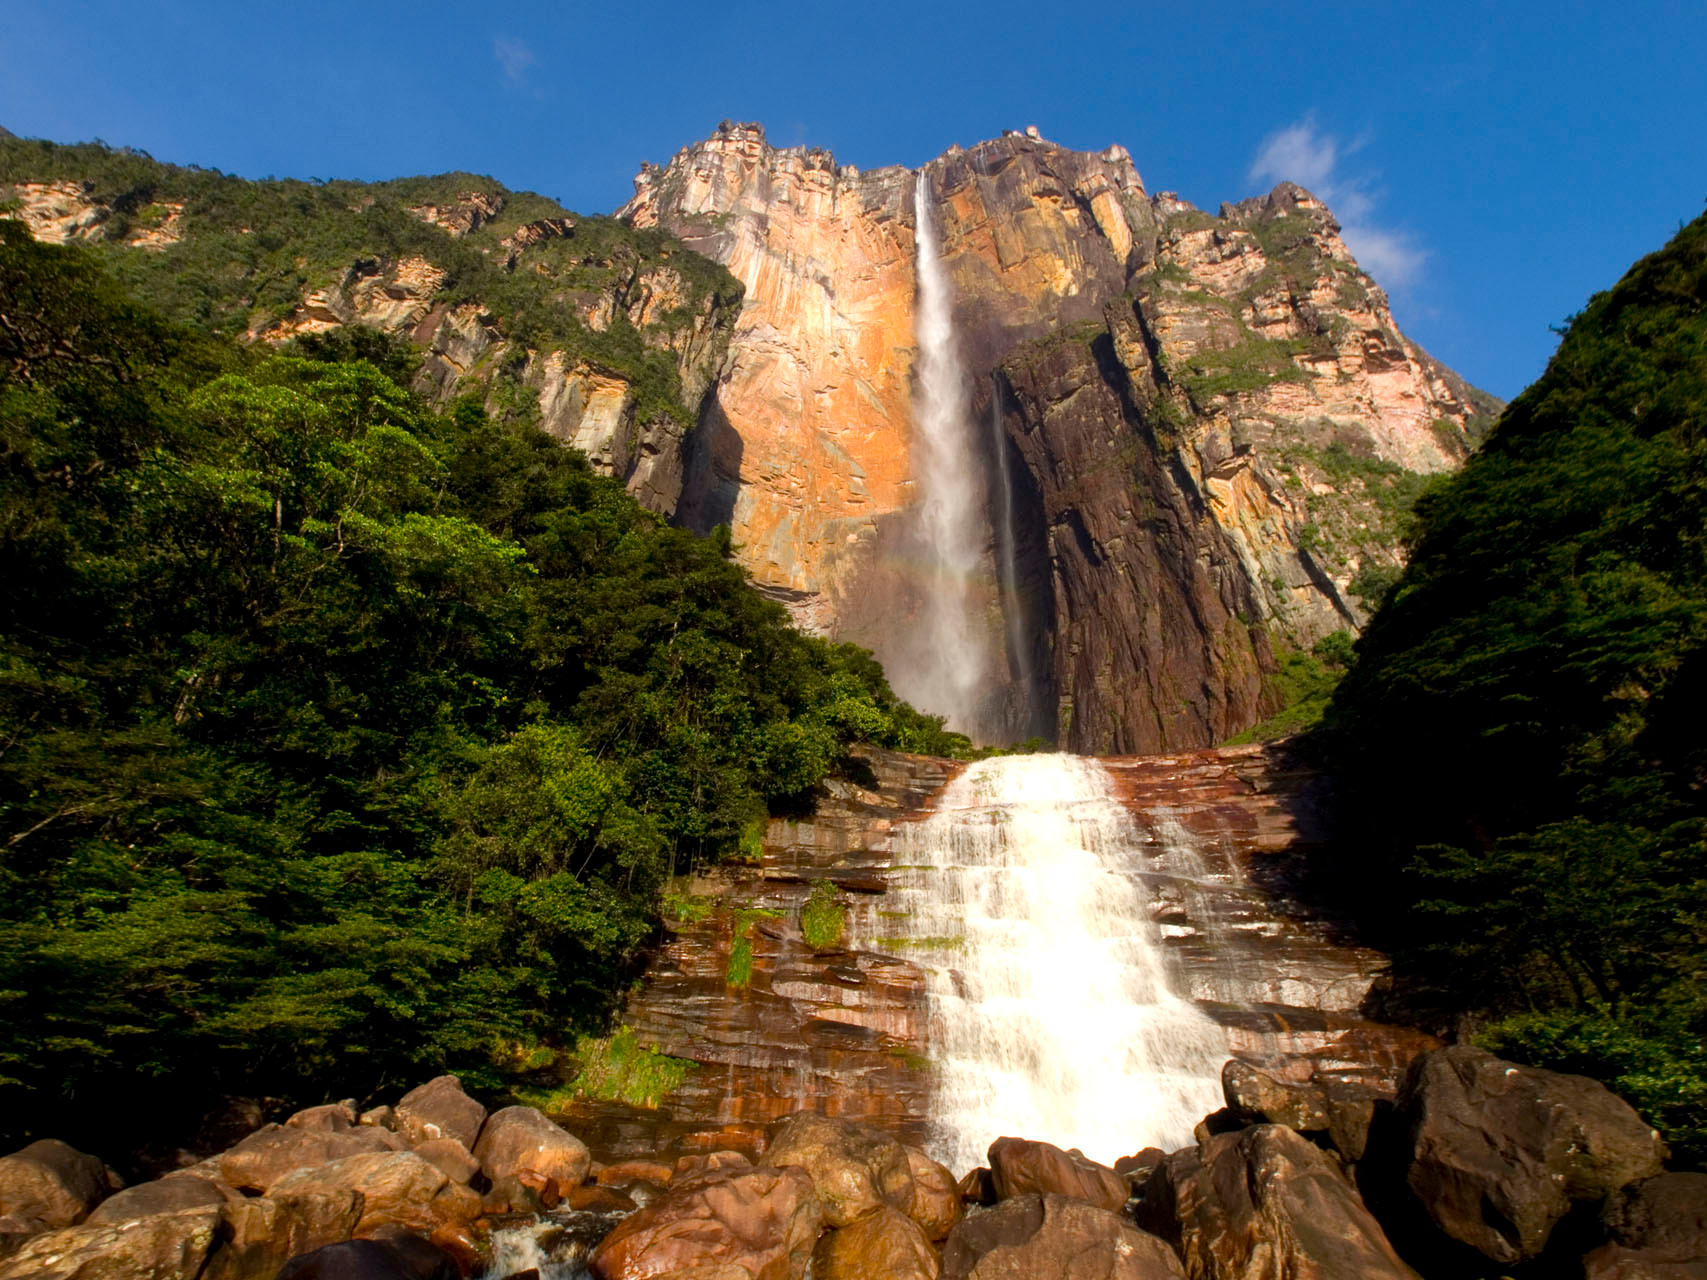 Canaima National Park: world's highest uninterrupted waterfall, with a height of 979 m and a plunge of 807 m